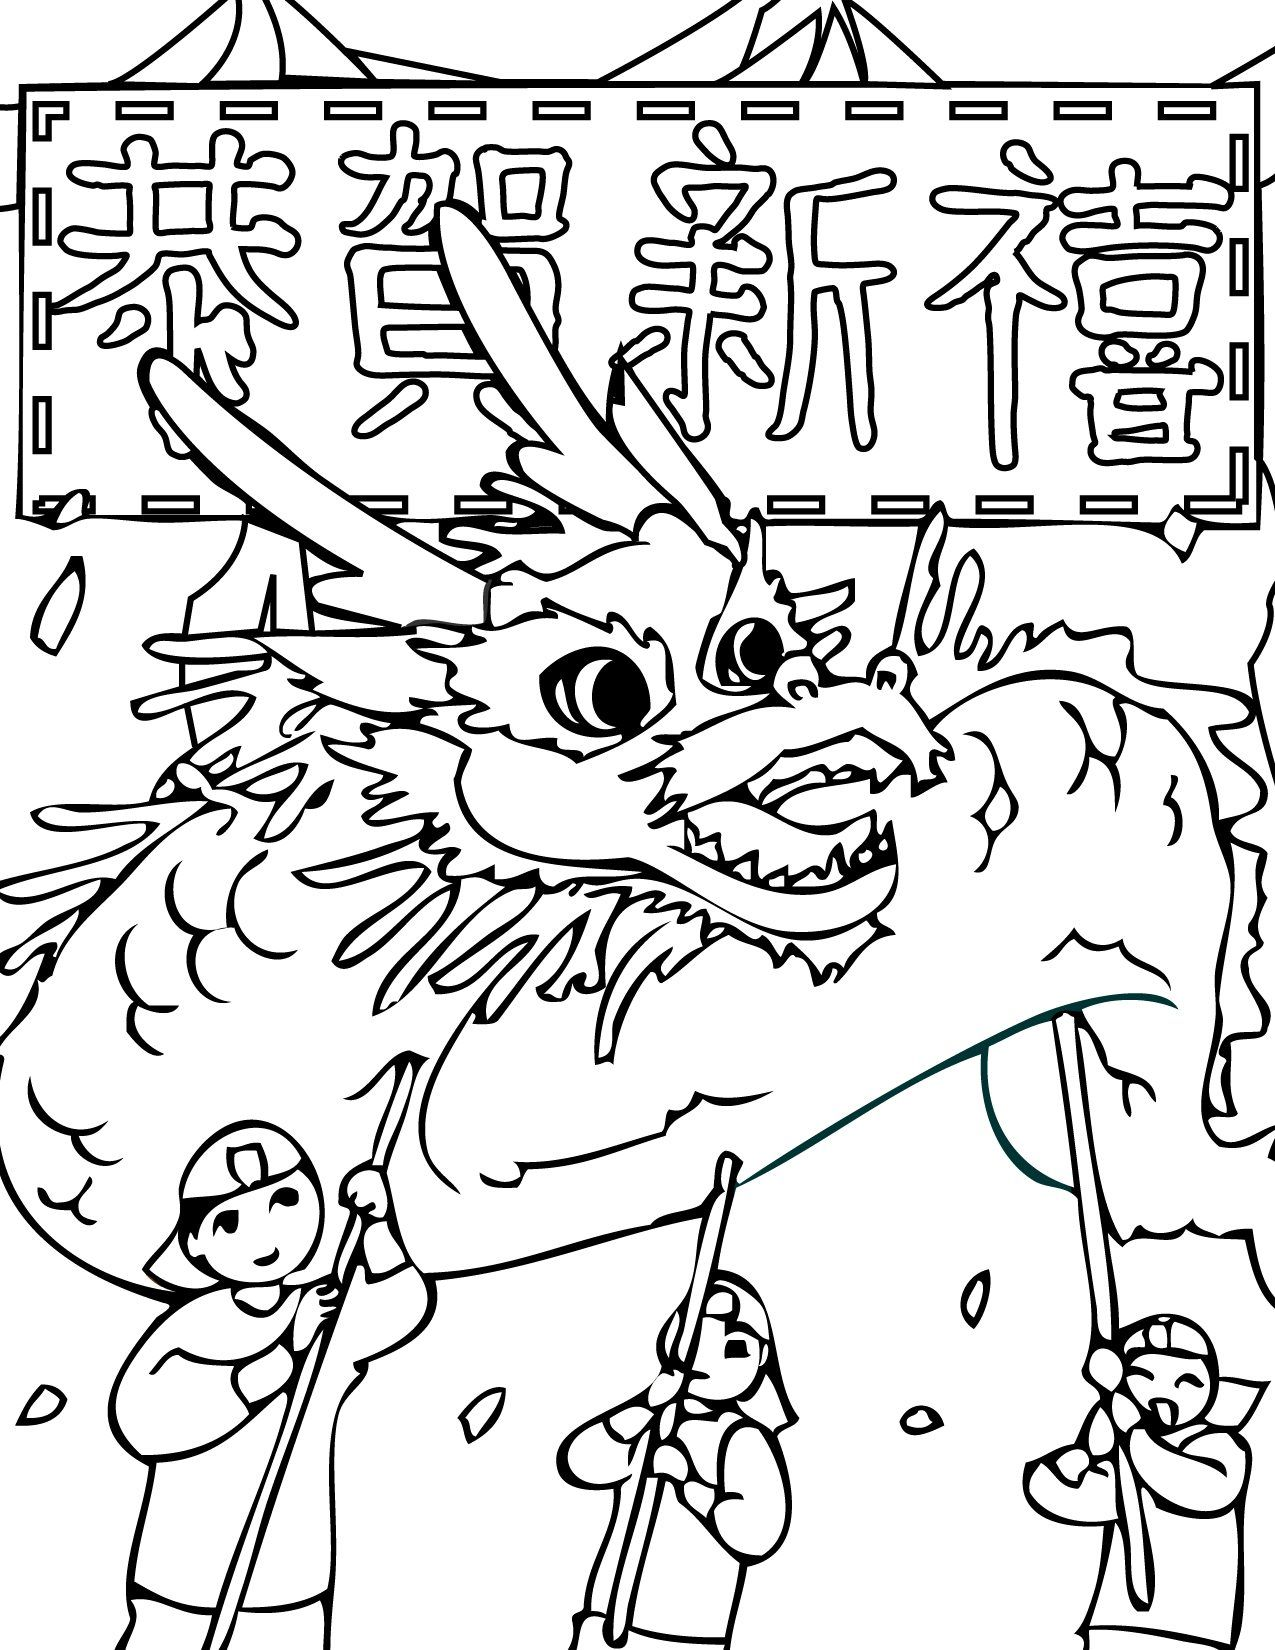 Chinese New Year Coloring Pages Best Coloring Pages For Kids